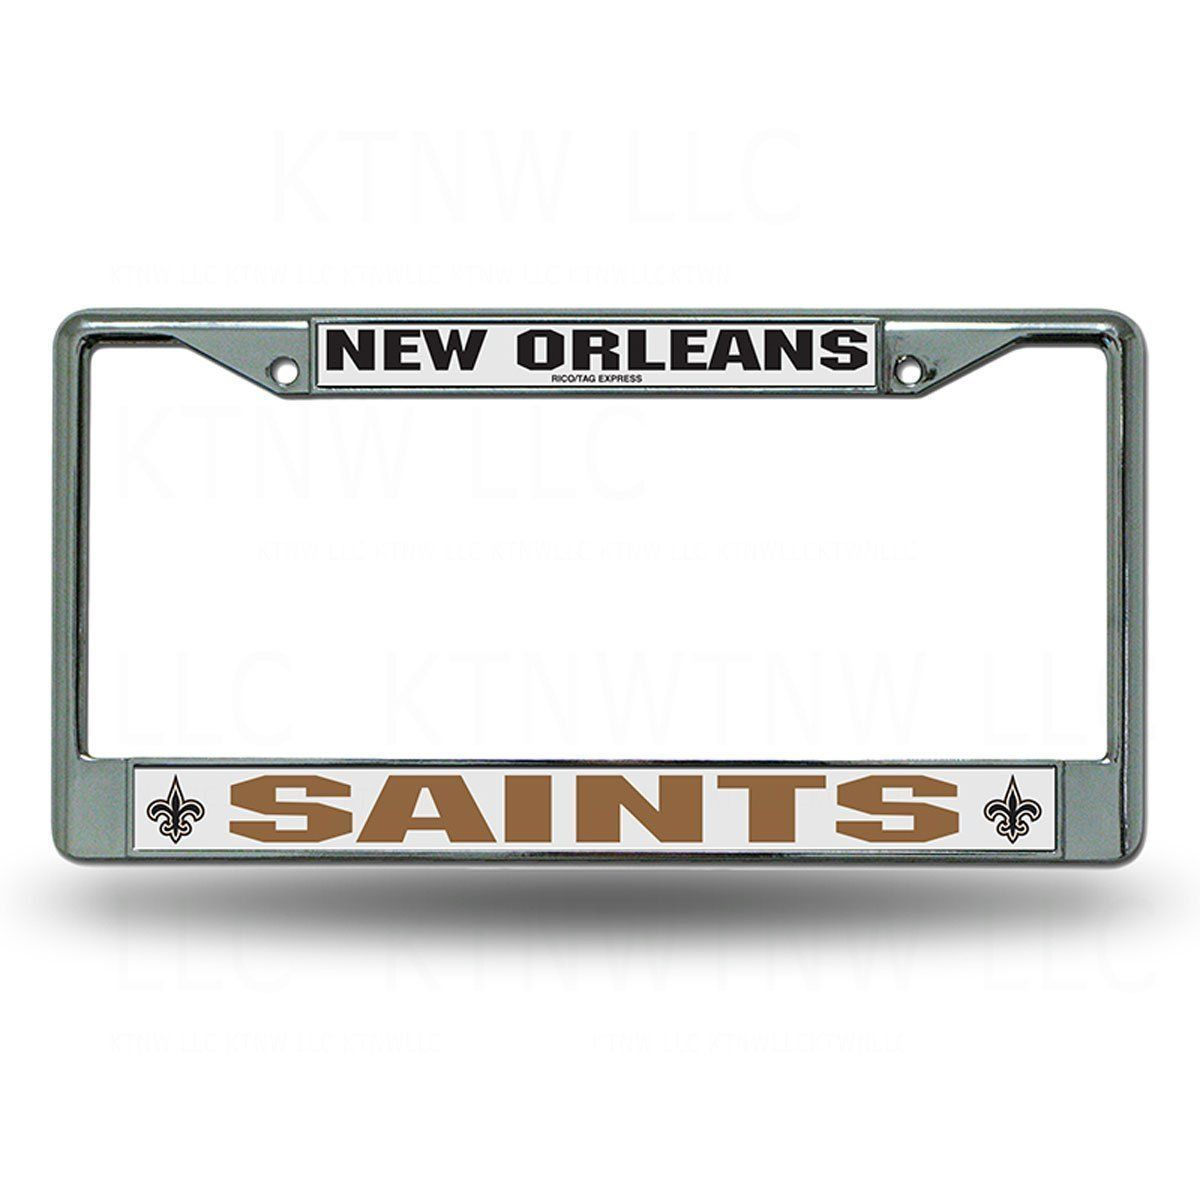 NEW ORLEANS SAINTS CAR AUTO CHROME METAL LICENSE PLATE TAG FRAME NFL FOOTBALL